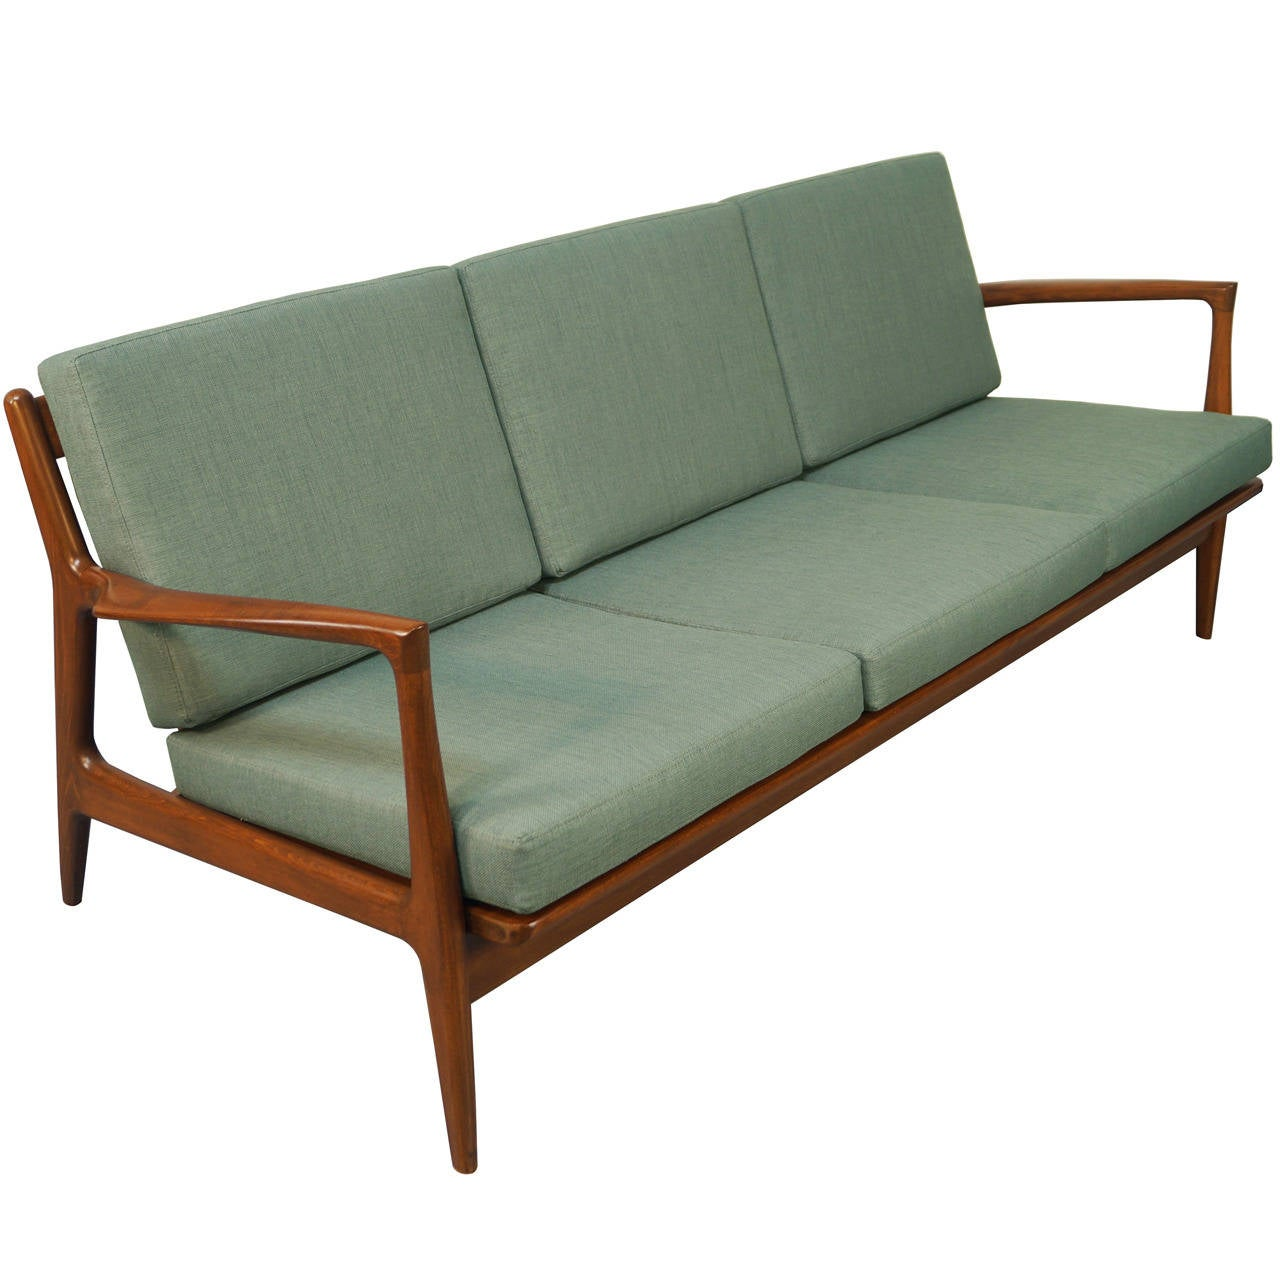 Danish modern sofas catchy mid century modern sleeper sofa for I contemporary furniture